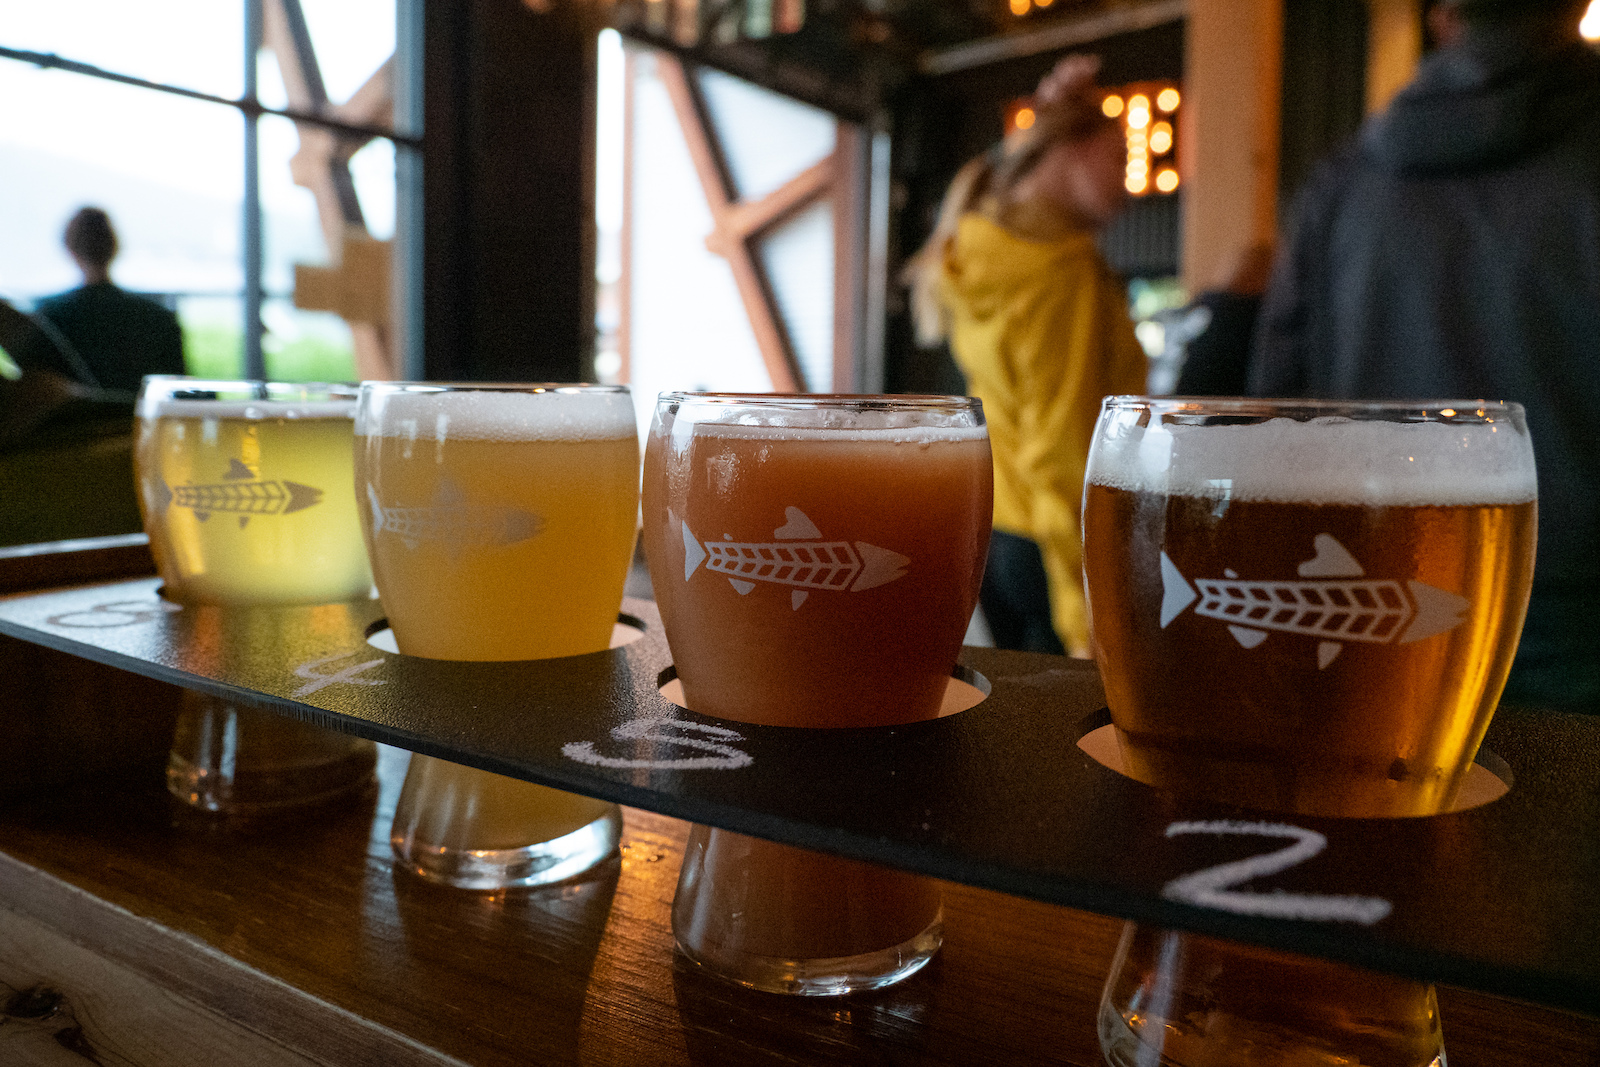 Smithers Brewing like their experimental and seasonal brews as seen in the diversity of their flight.